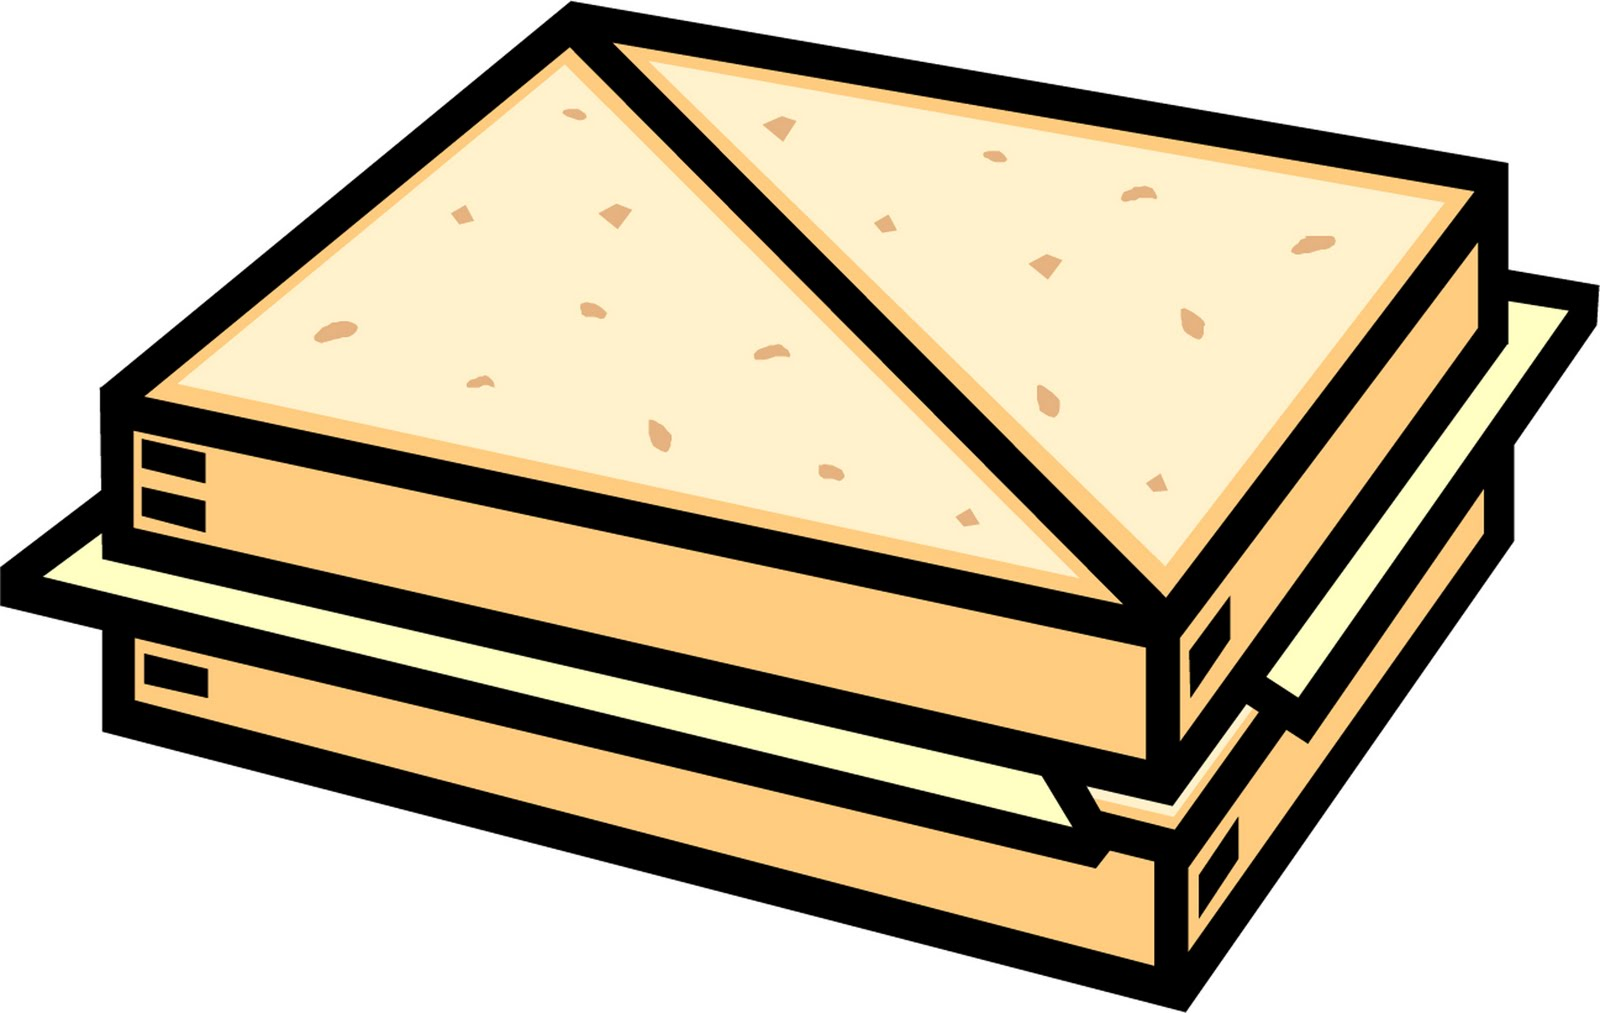 Images For Cheese Sandwich Clipart-Images For Cheese Sandwich Clipart-14